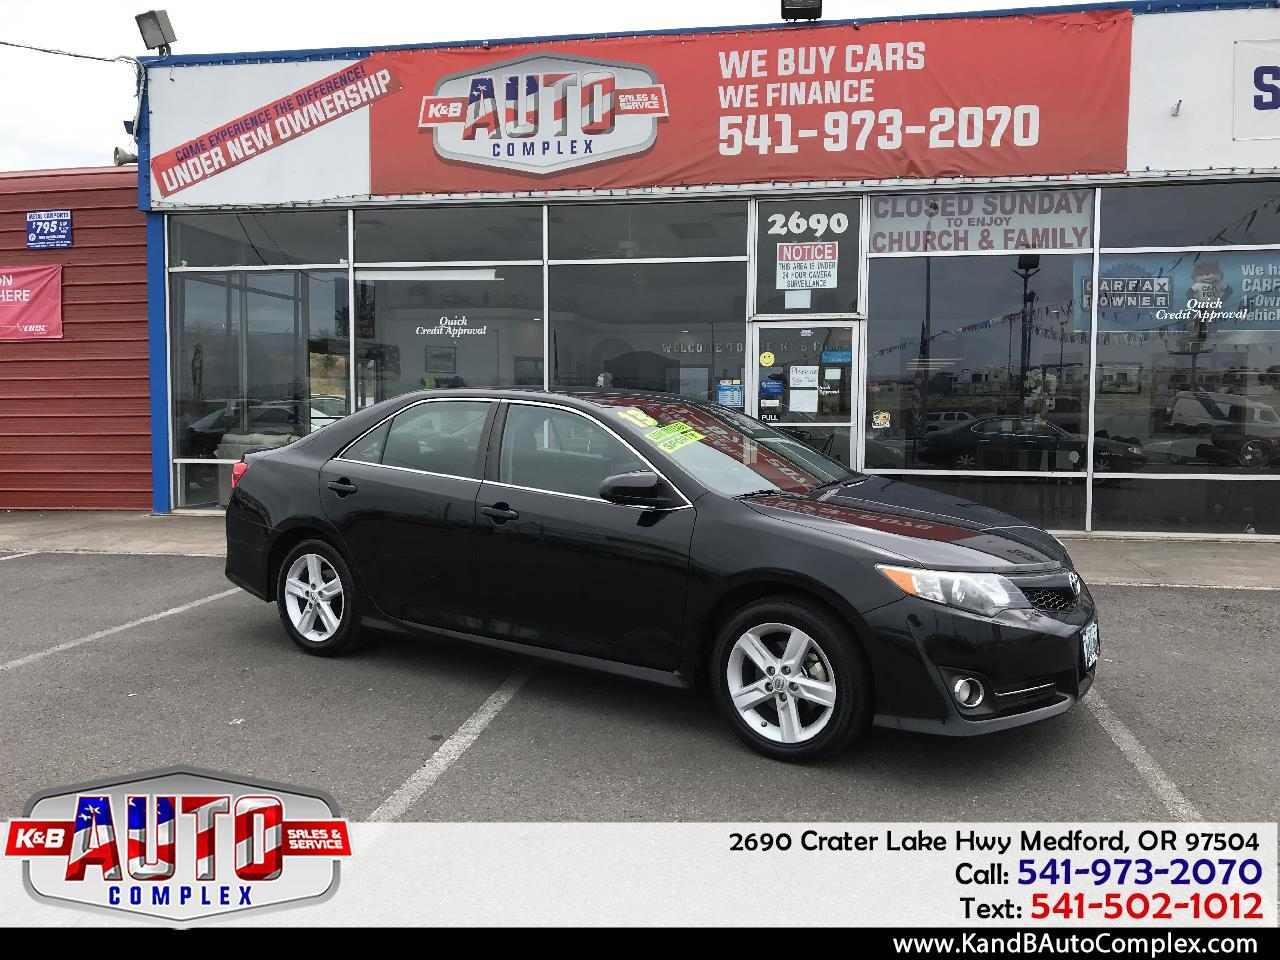 2013 Toyota Camry 4dr Sdn I4 Auto XLE (Natl)